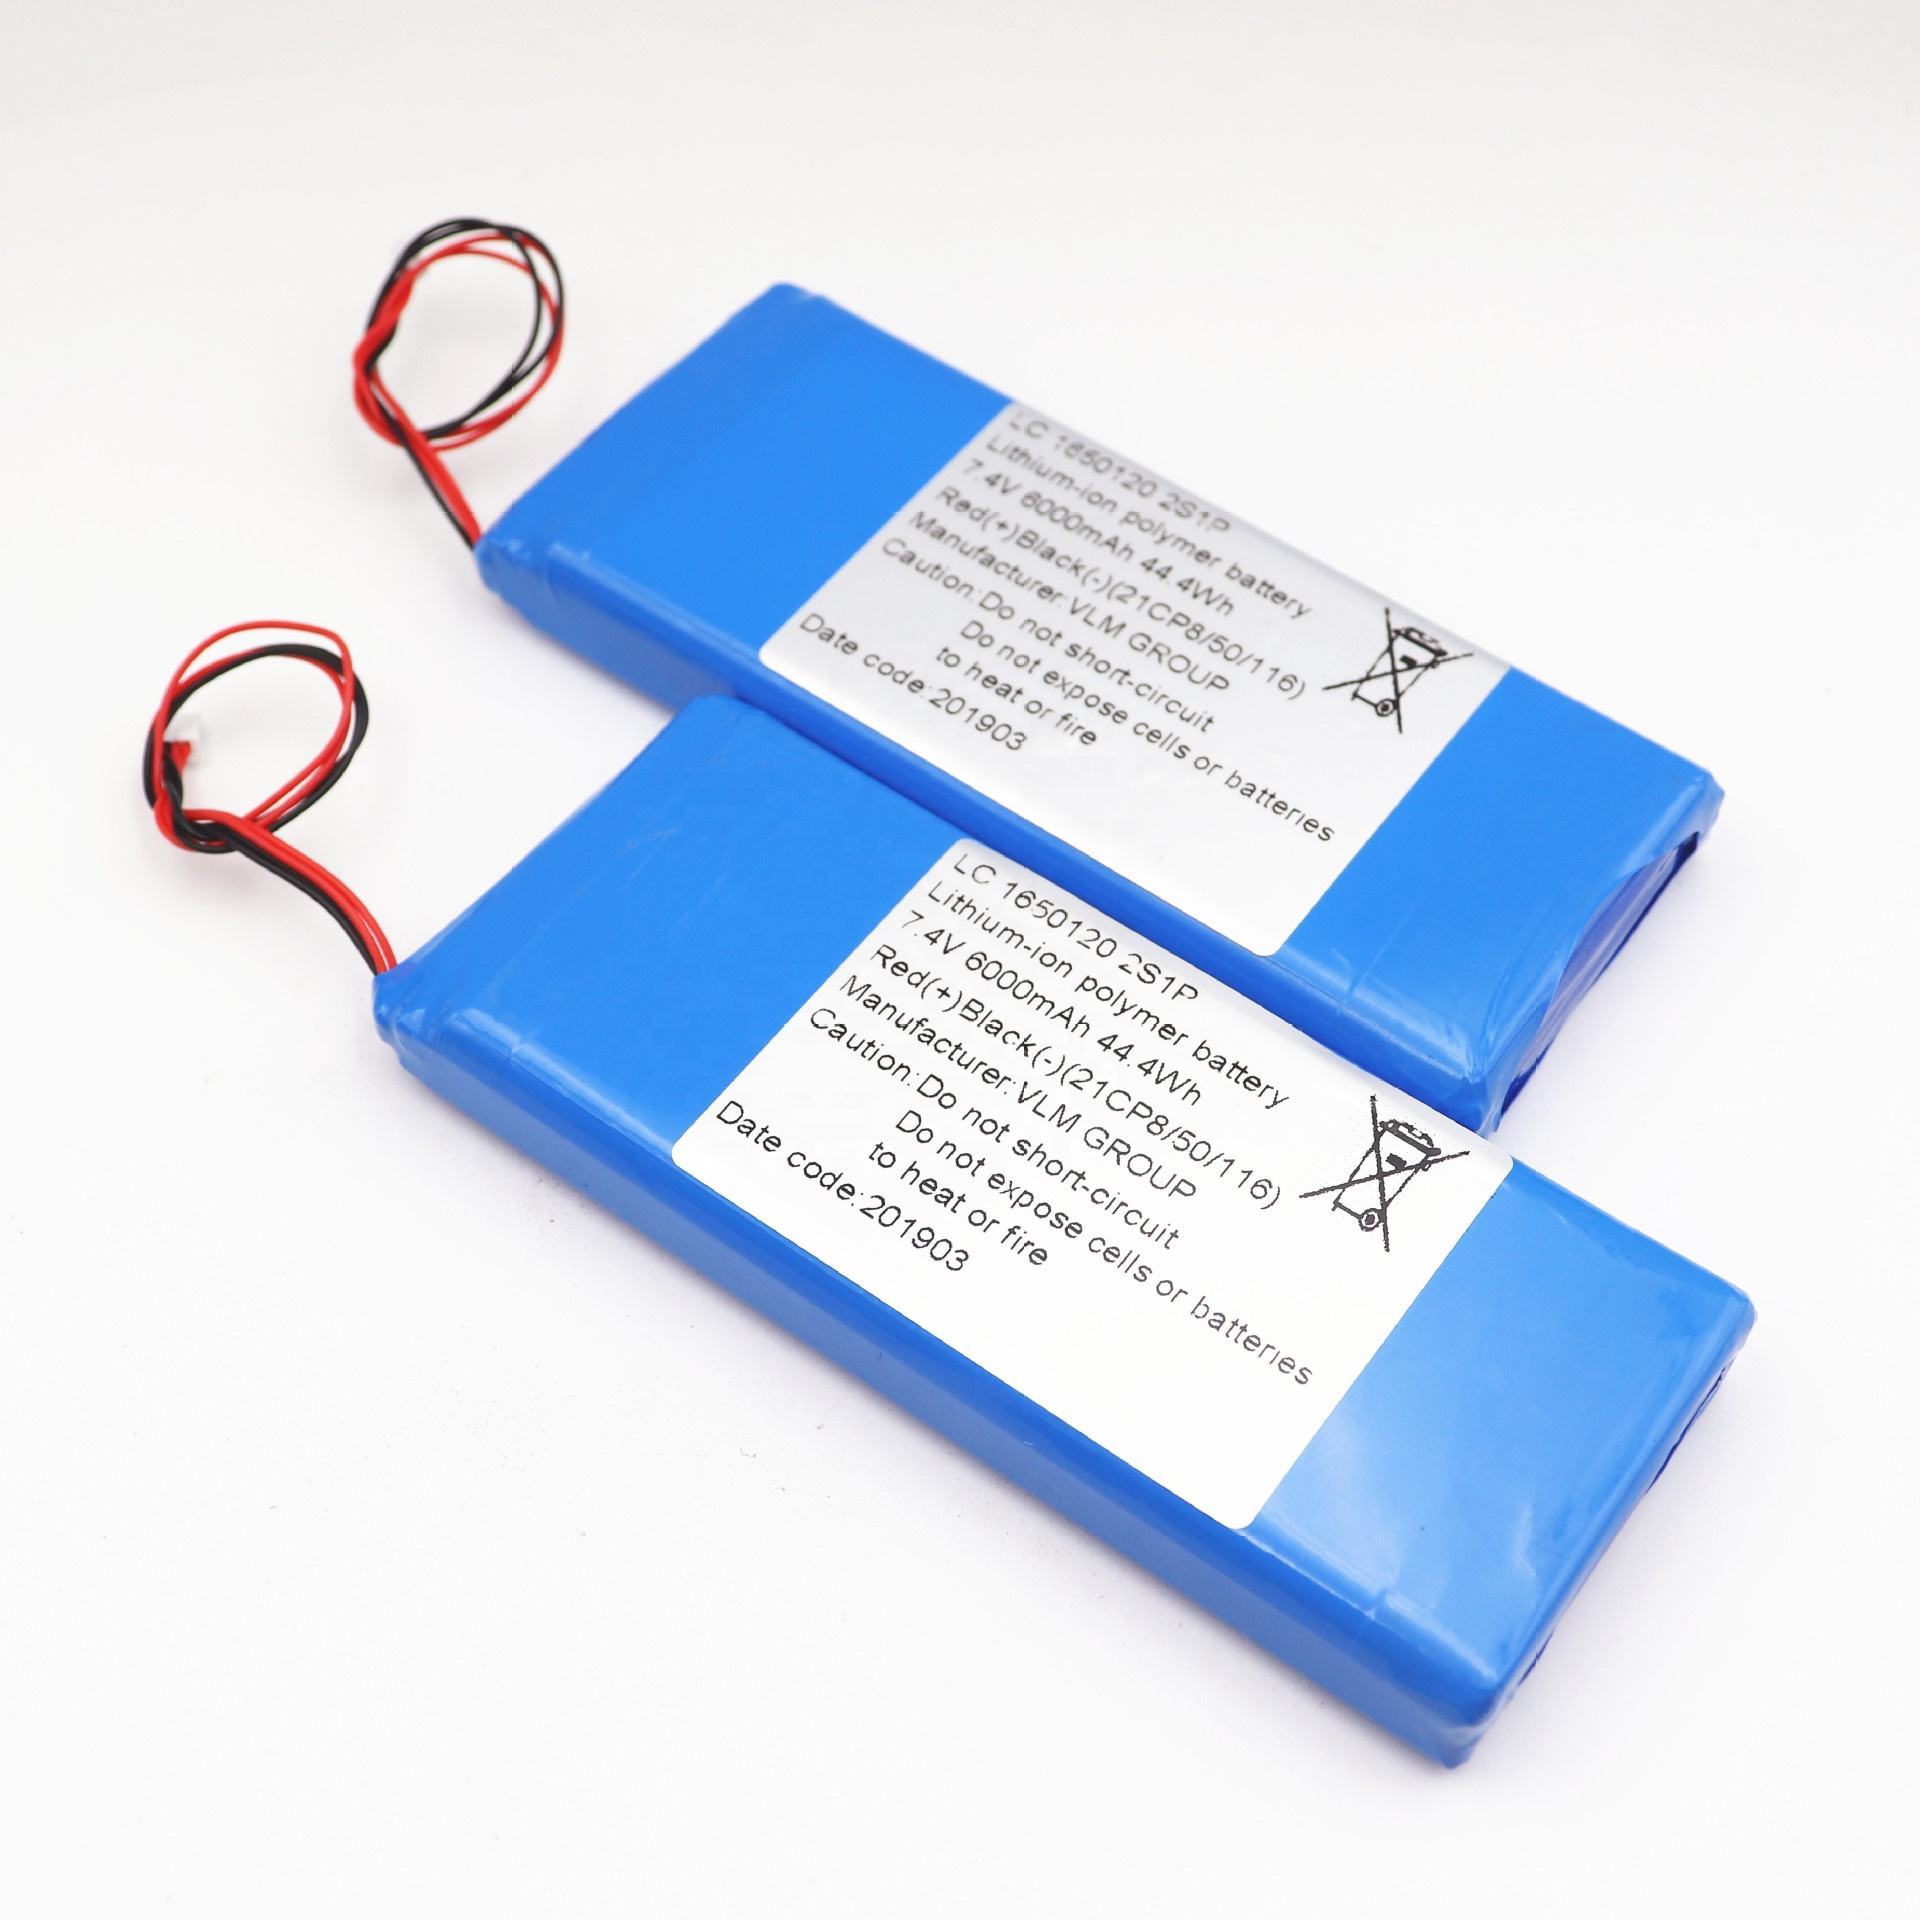 High quality lc 1650120 2s1p li ion polymer battery pack 7.4v 6000mah 44.4Wh for Bluetooth speaker